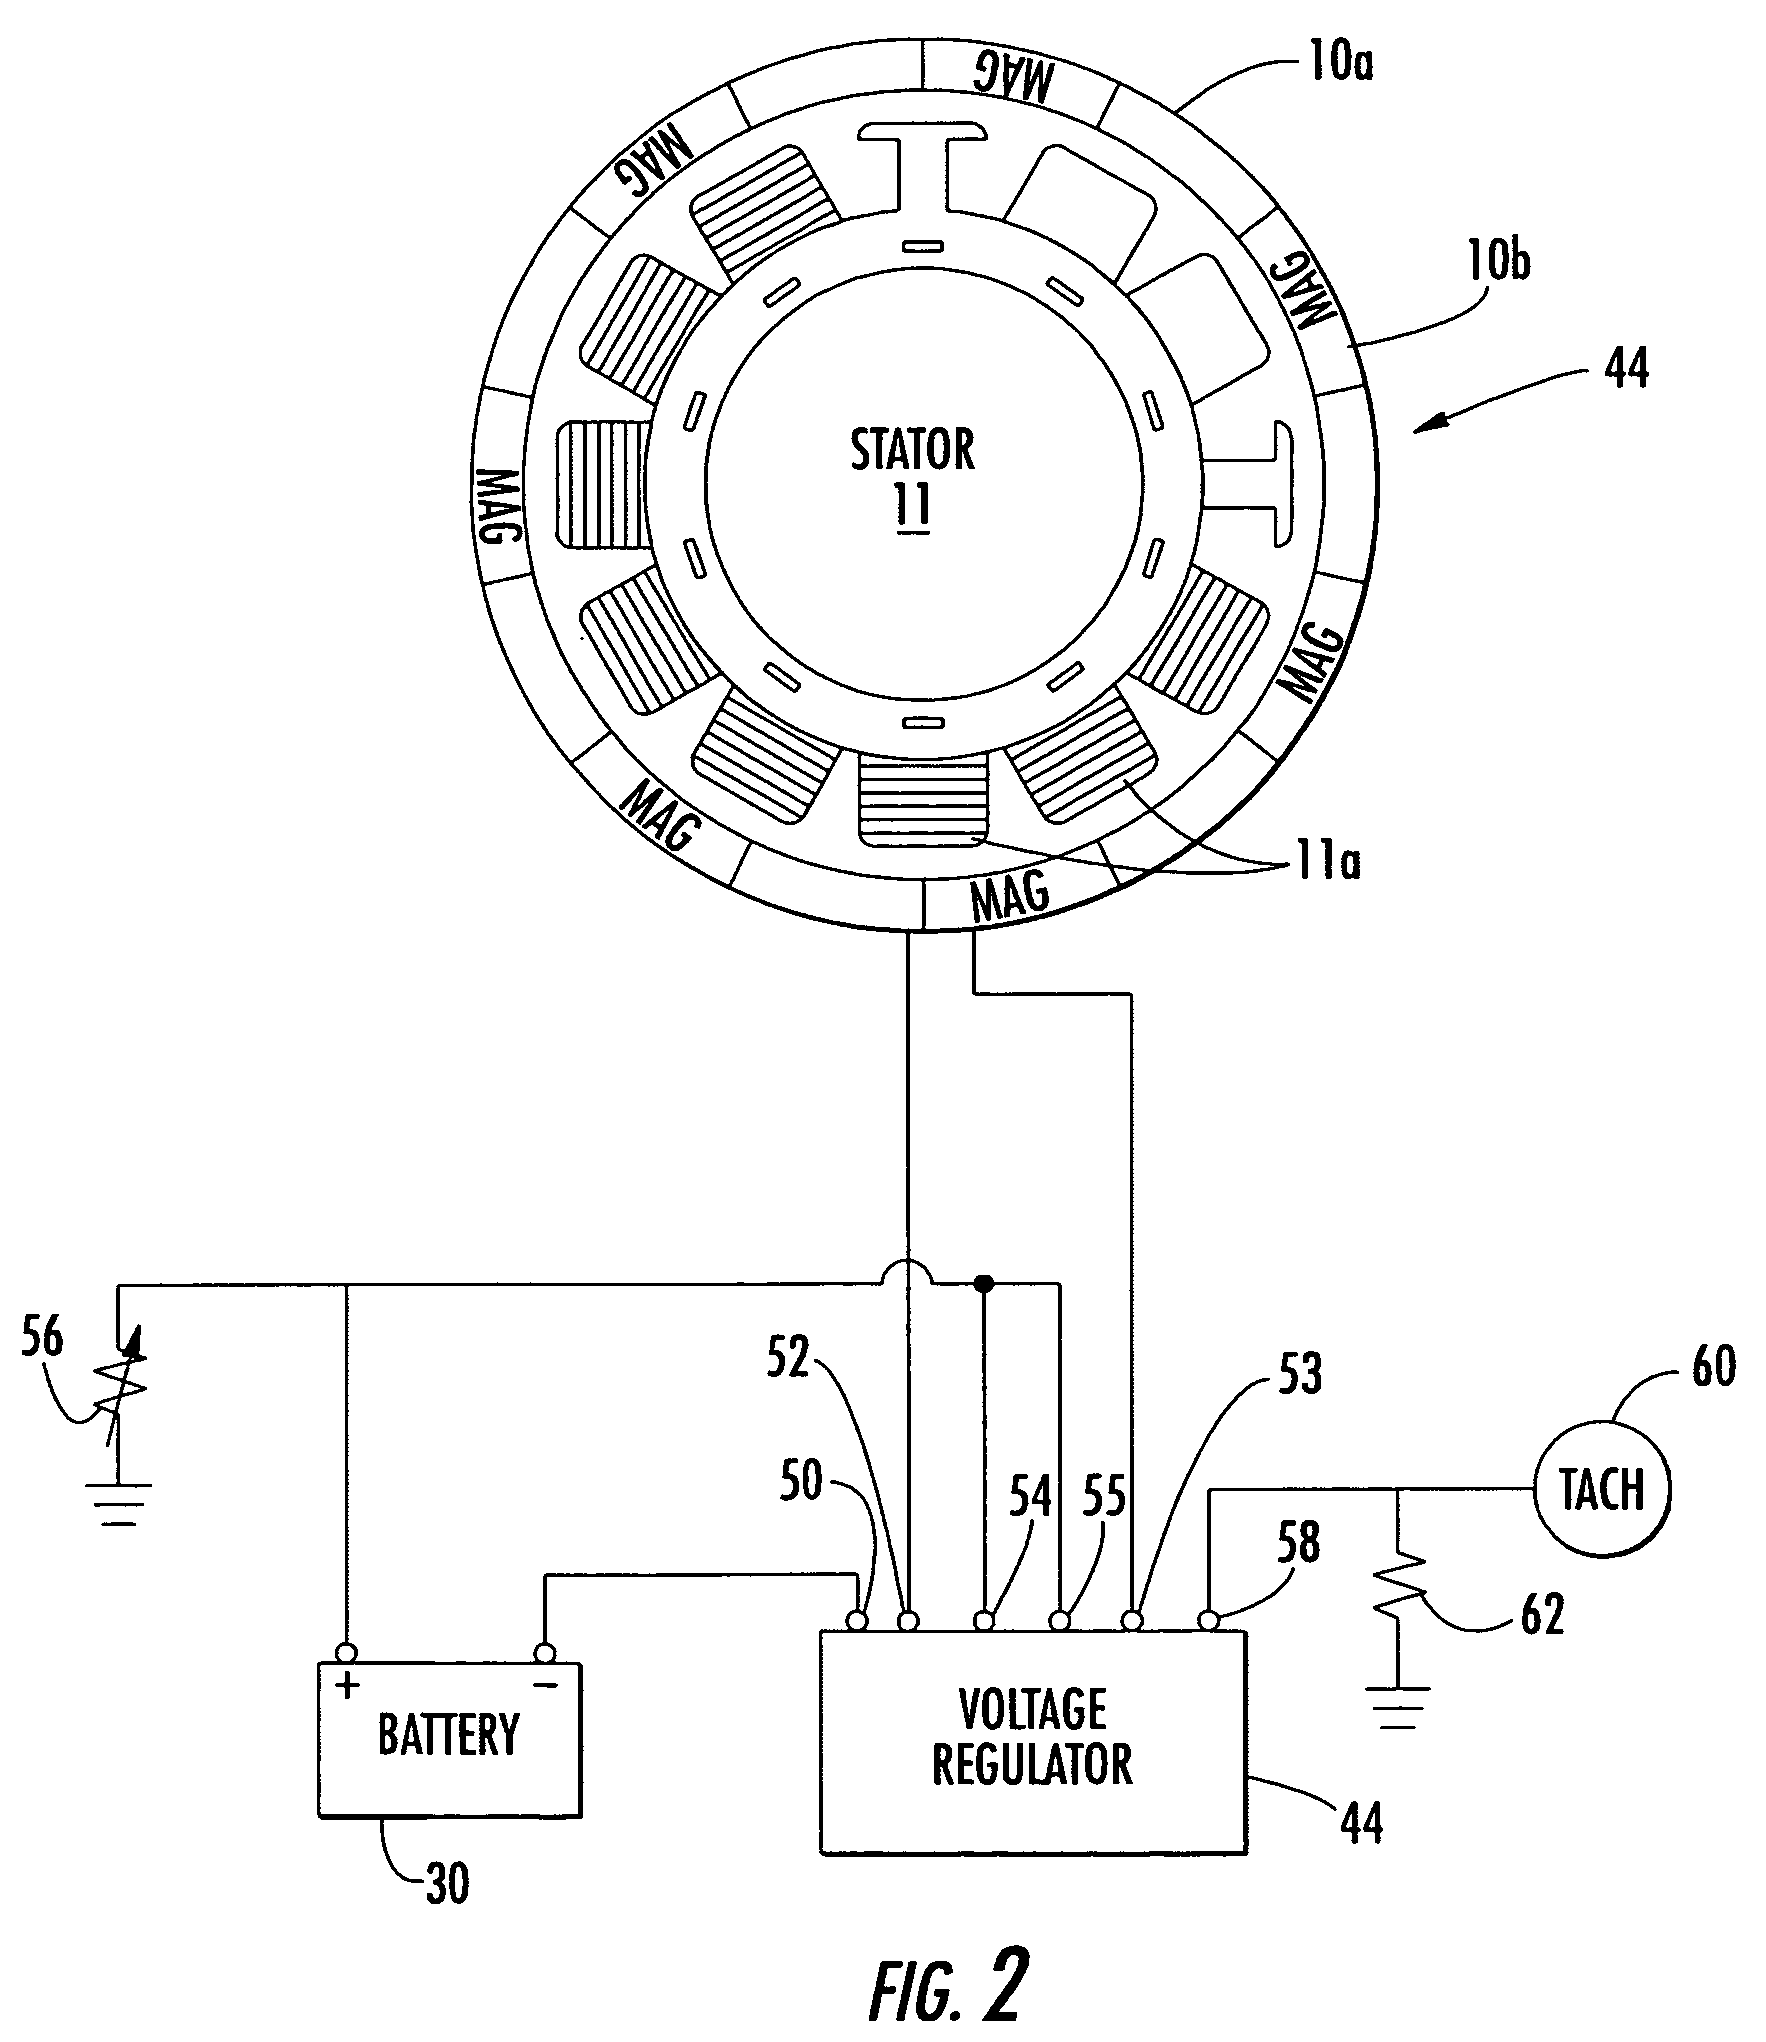 Electronics Wiring Diagrams Schematic : Patent us alternator system with temperature